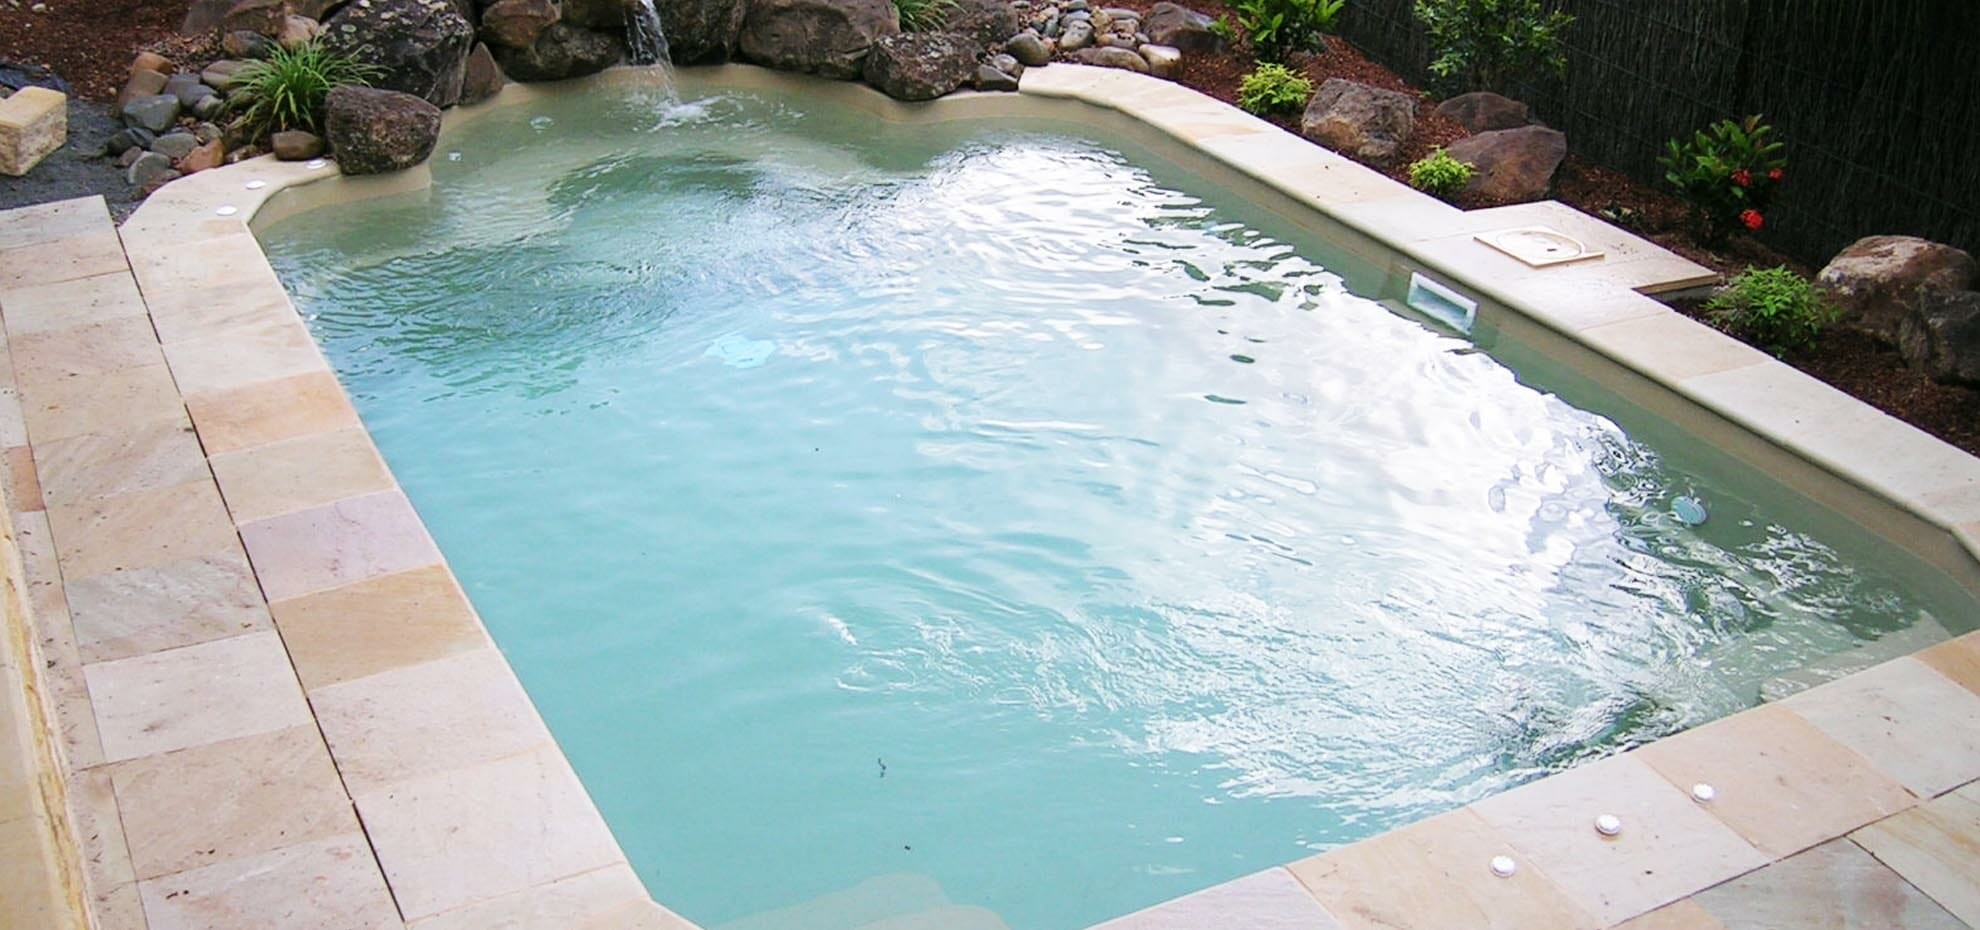 The Courtyard Roman fibreglass pool design with coping and water feature by Leisure Pools